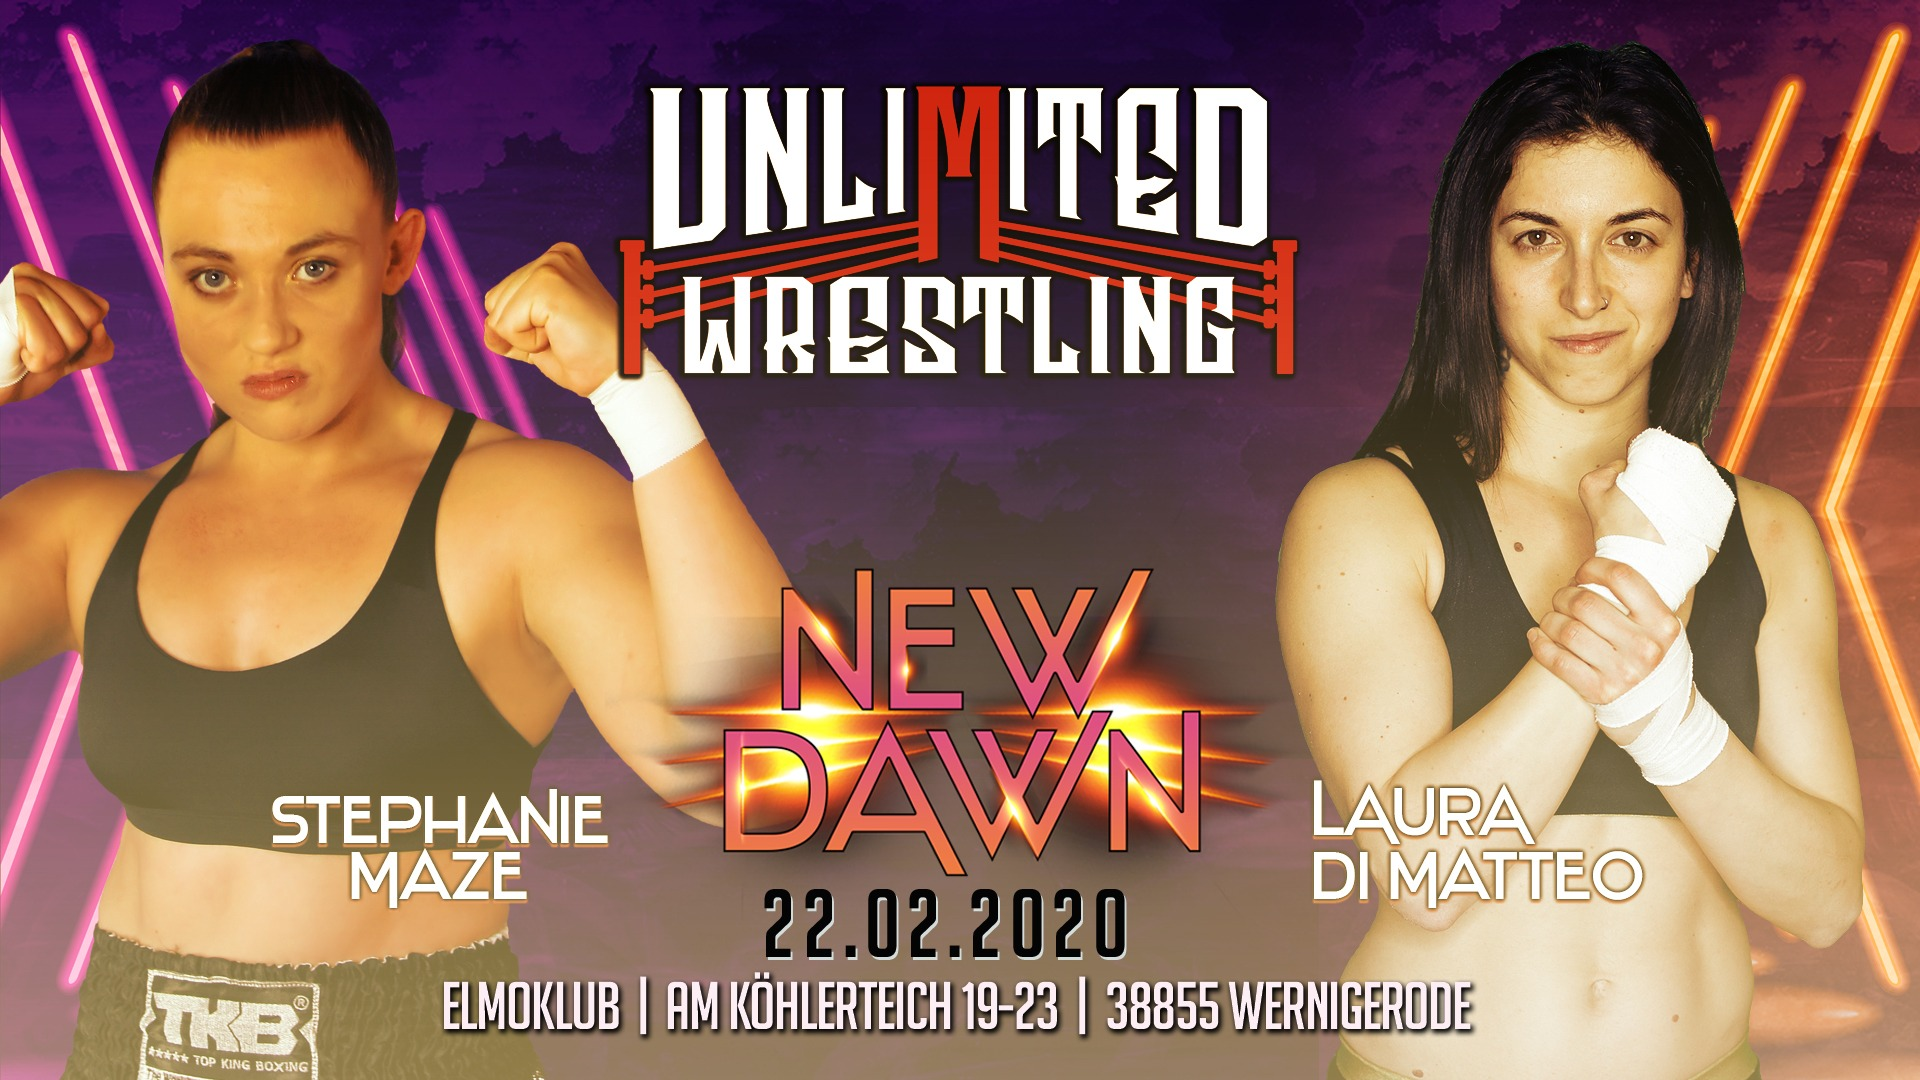 FIRST EVER Unlimited Women's MatchStephanie Maze vs. Laura DiMatteo